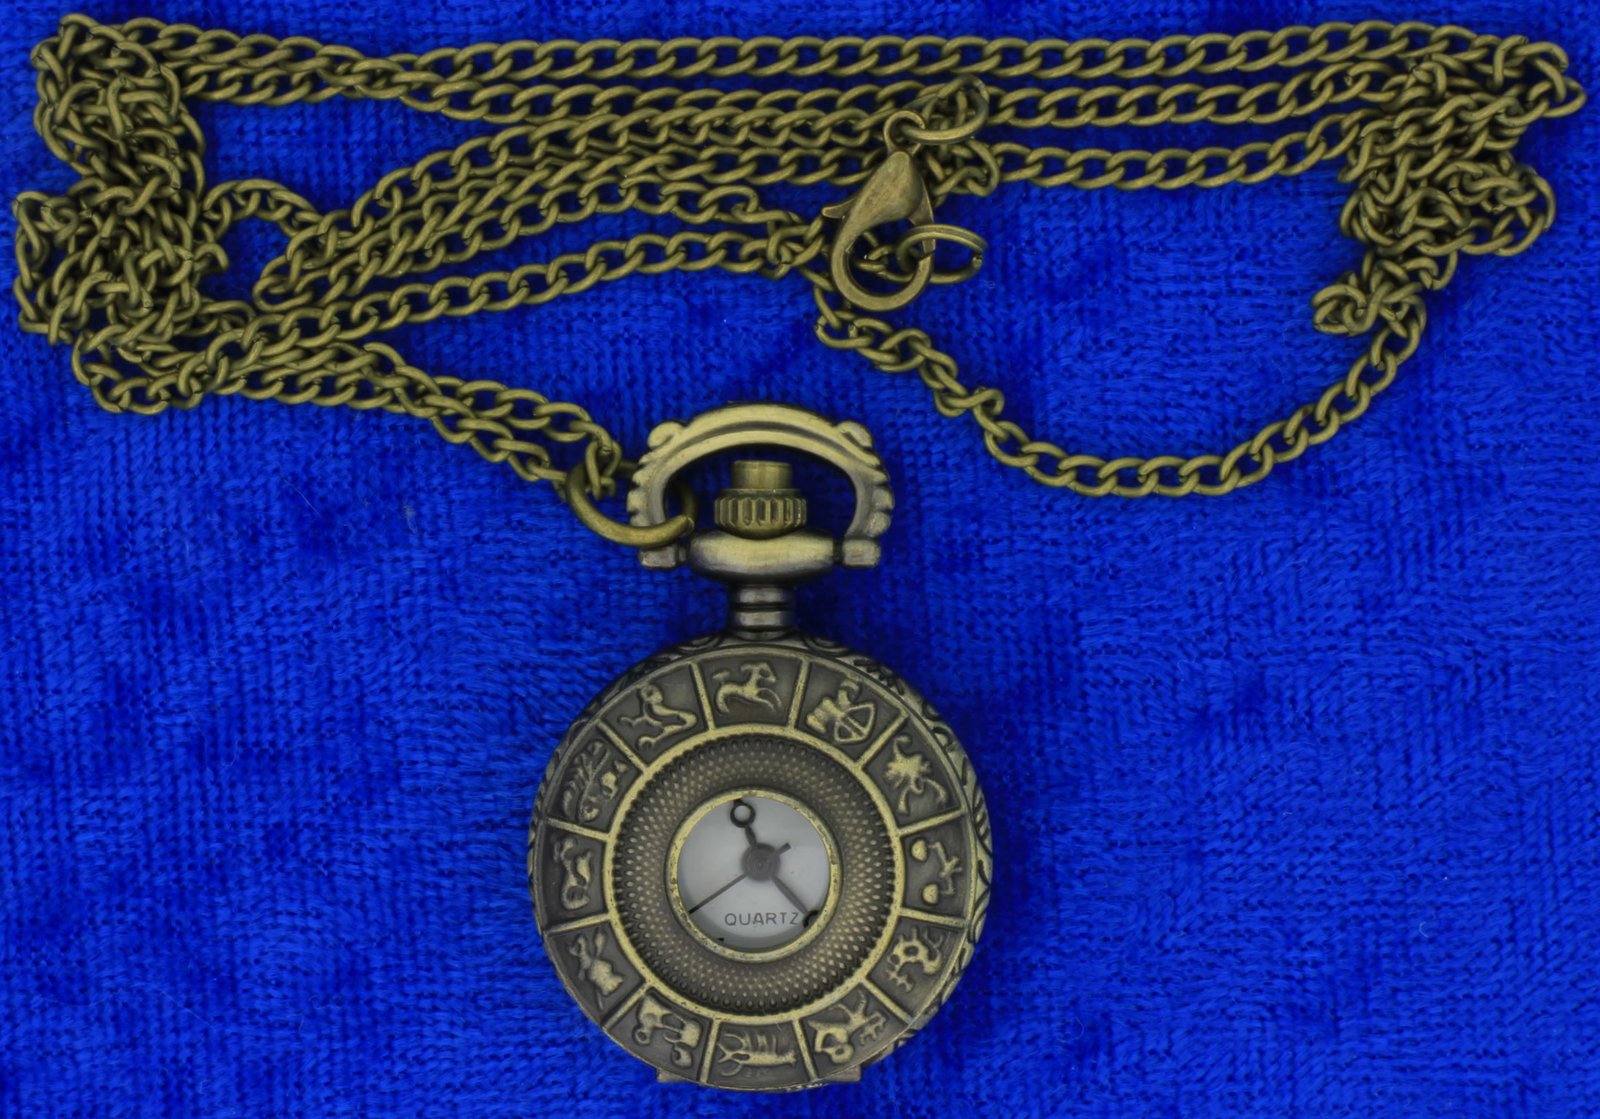 Zodiac watch necklace